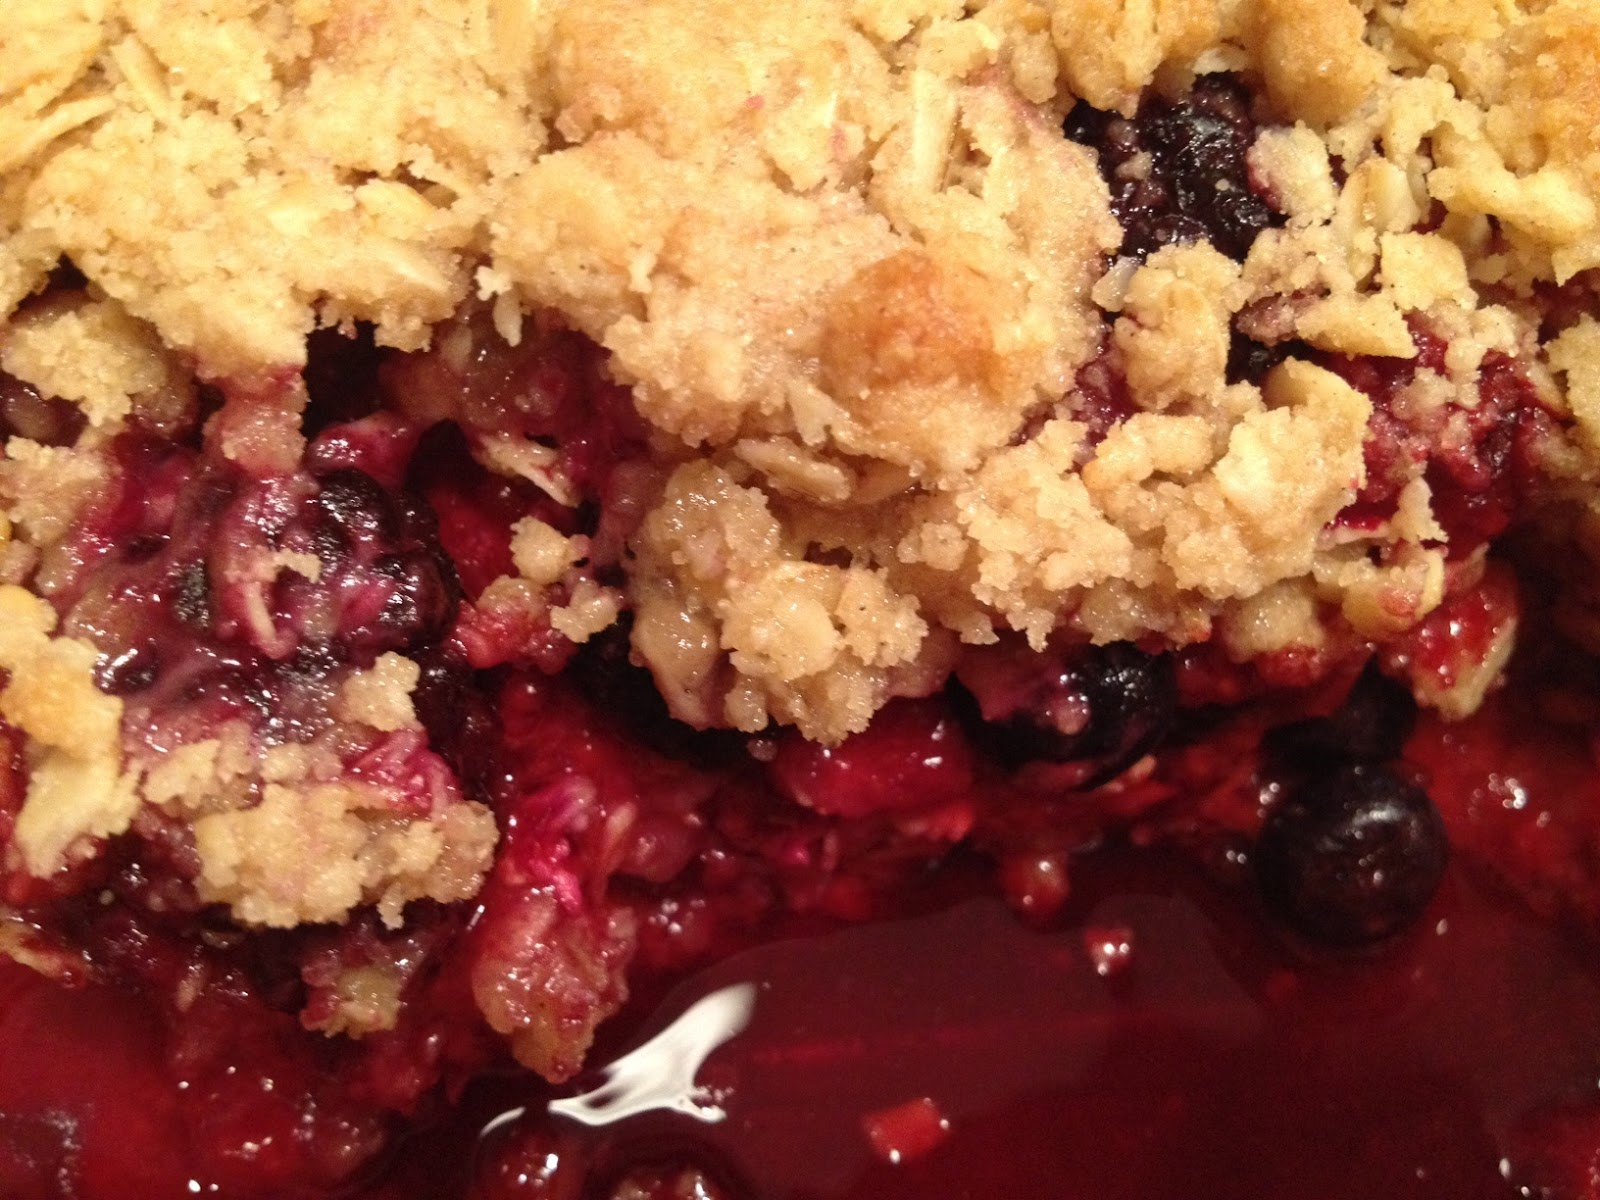 Mixed Berry Cobbler With Cake Mix